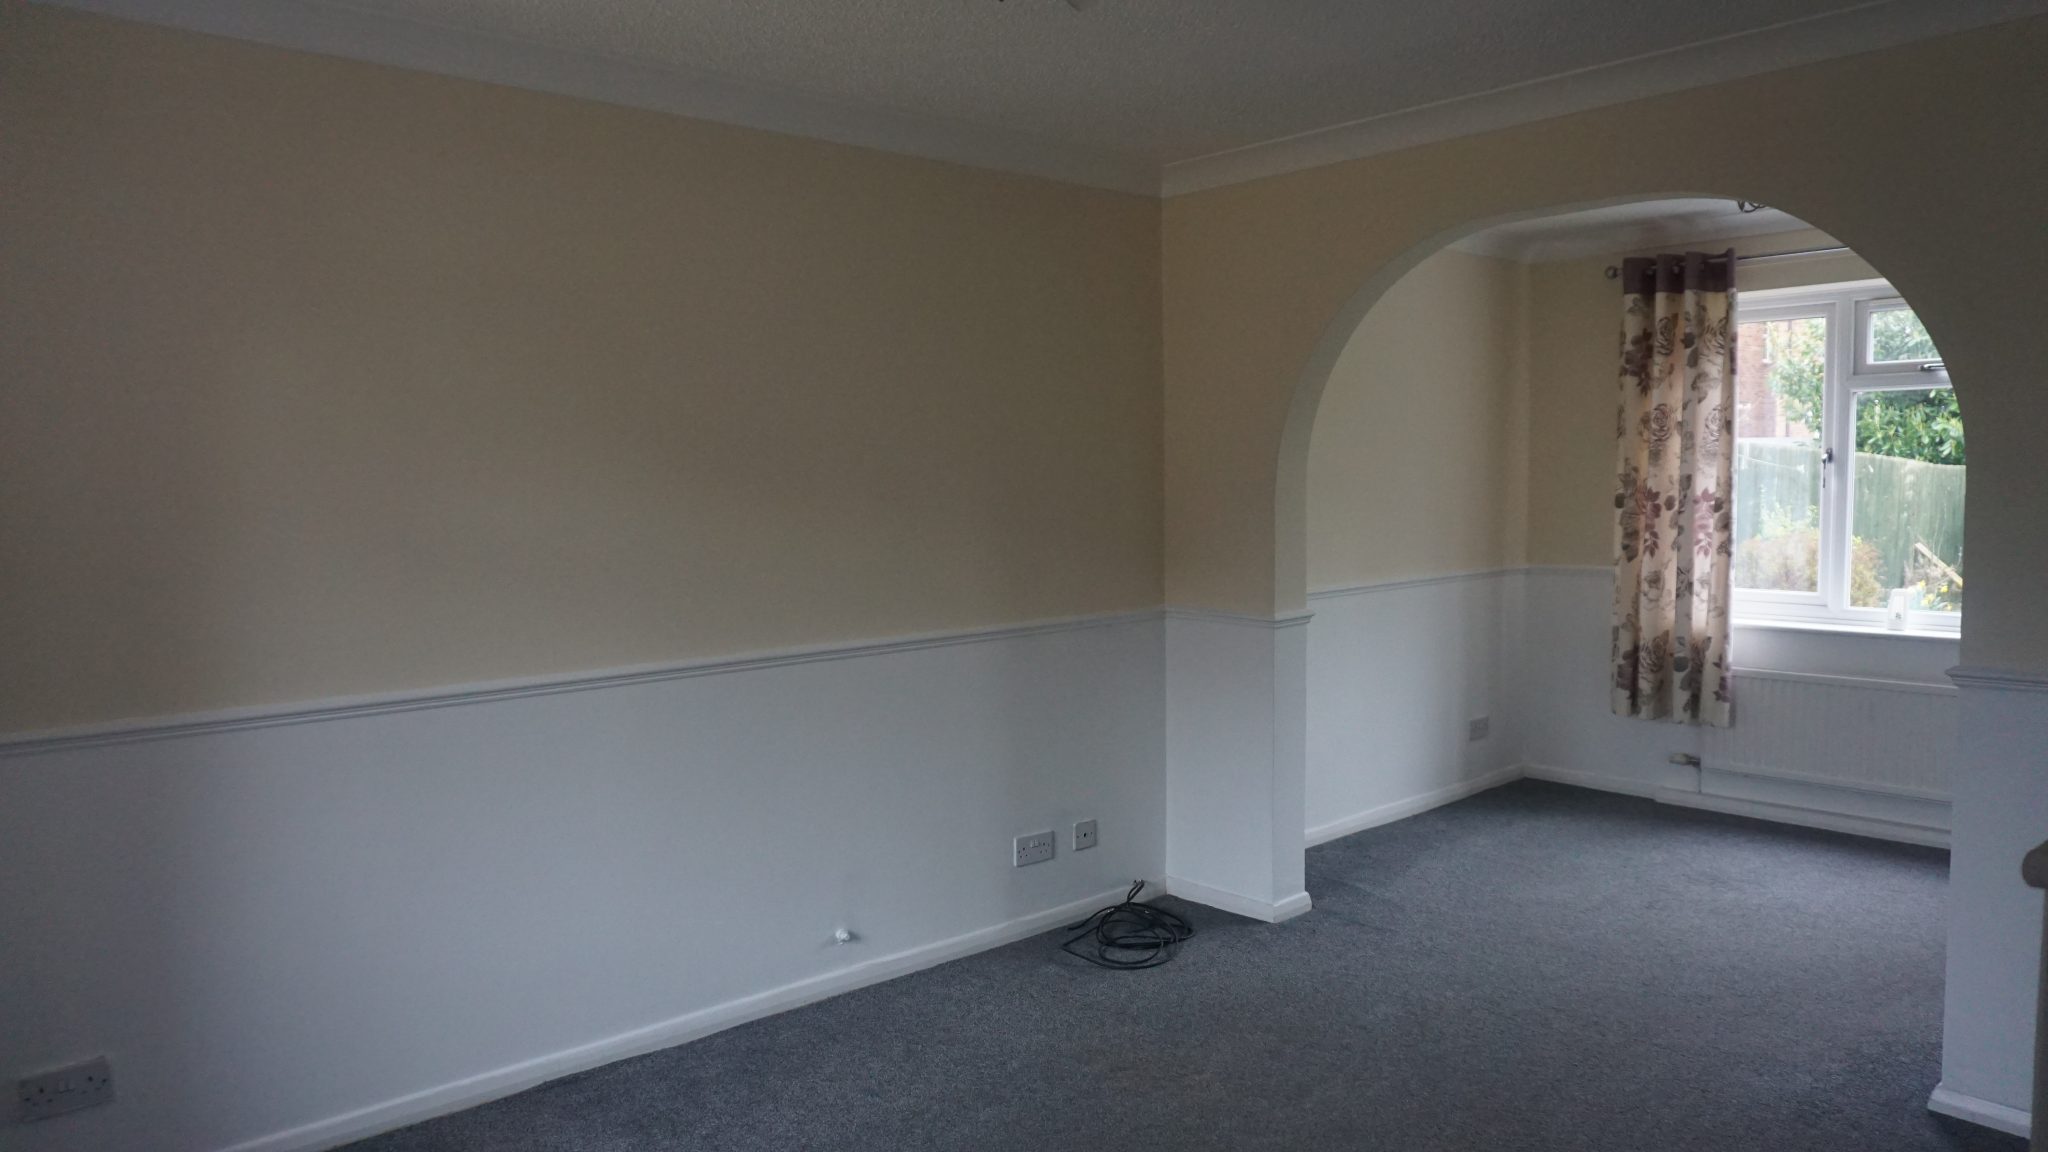 3 Bedroom Semi Detached House With Garage In Spalding For Rent